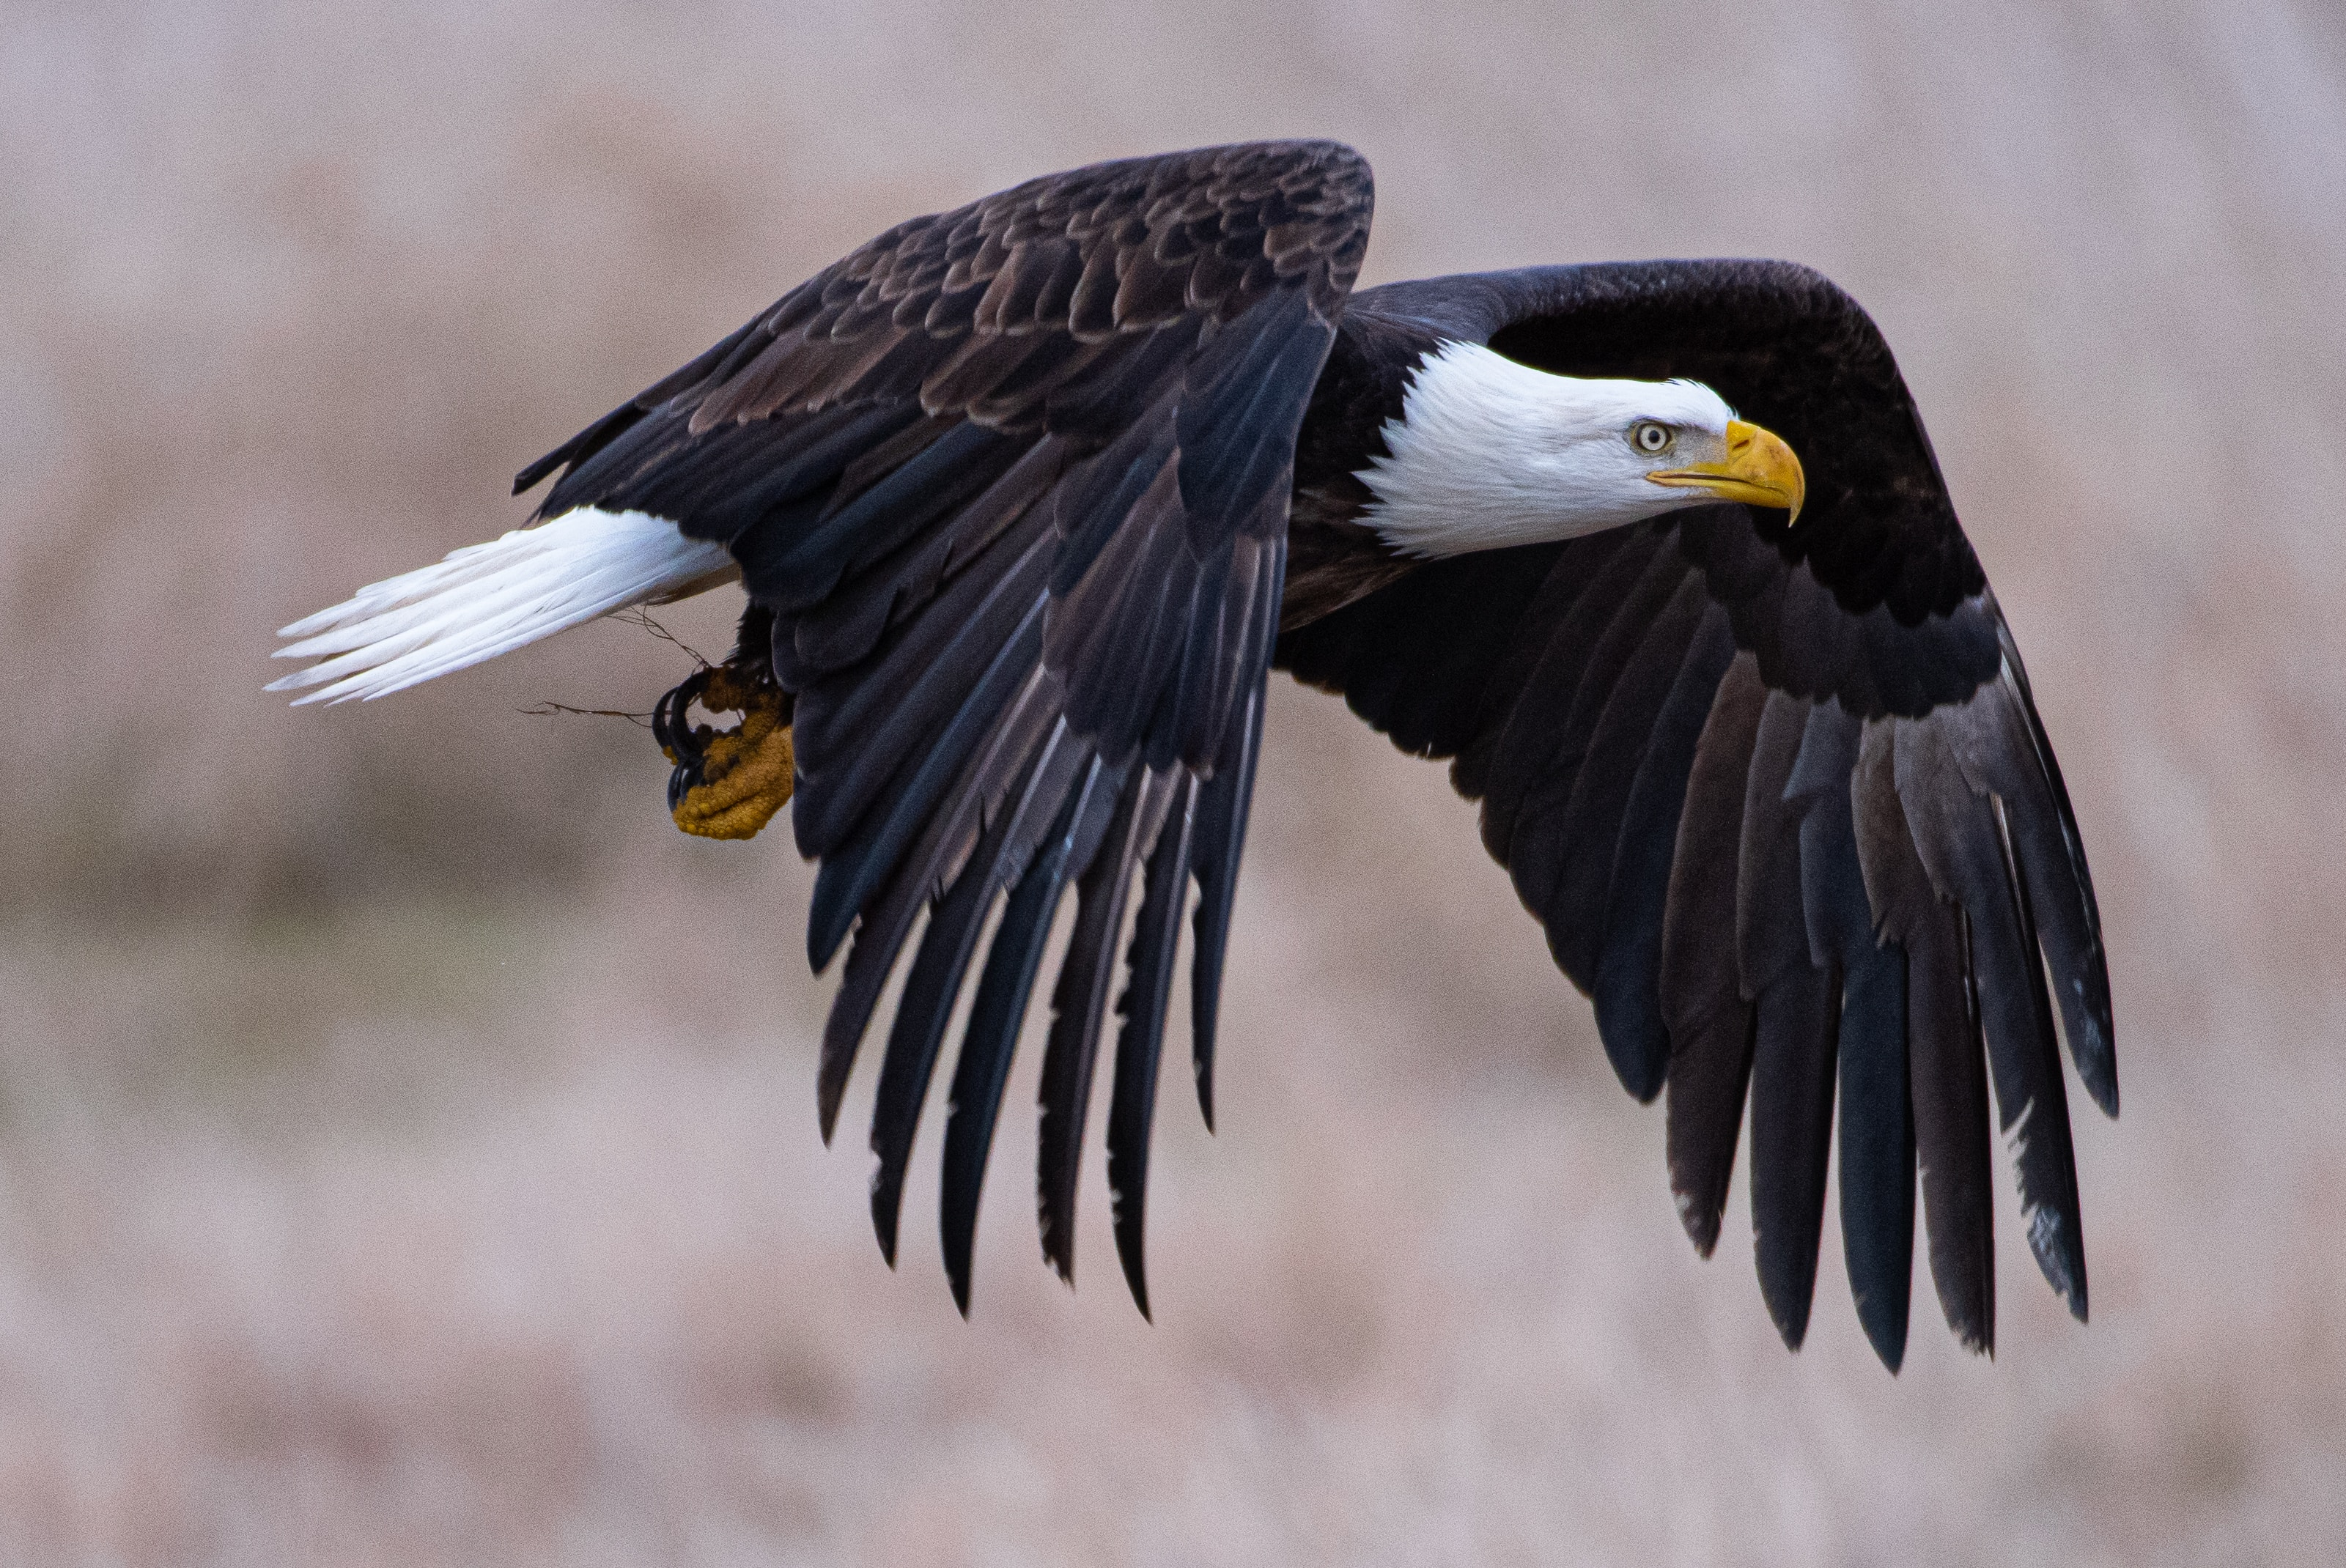 4k Bald Eagle Hd Birds 4k Wallpapers Images Backgrounds Photos And Pictures